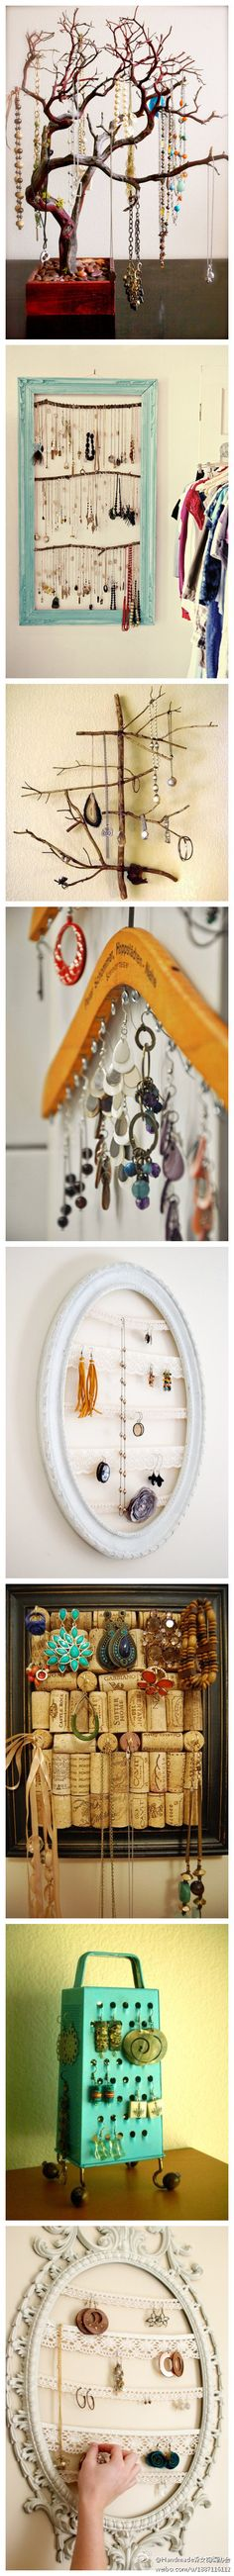 Best DIY jewelery holder ever.  Love the frame idea! in the process of making:)